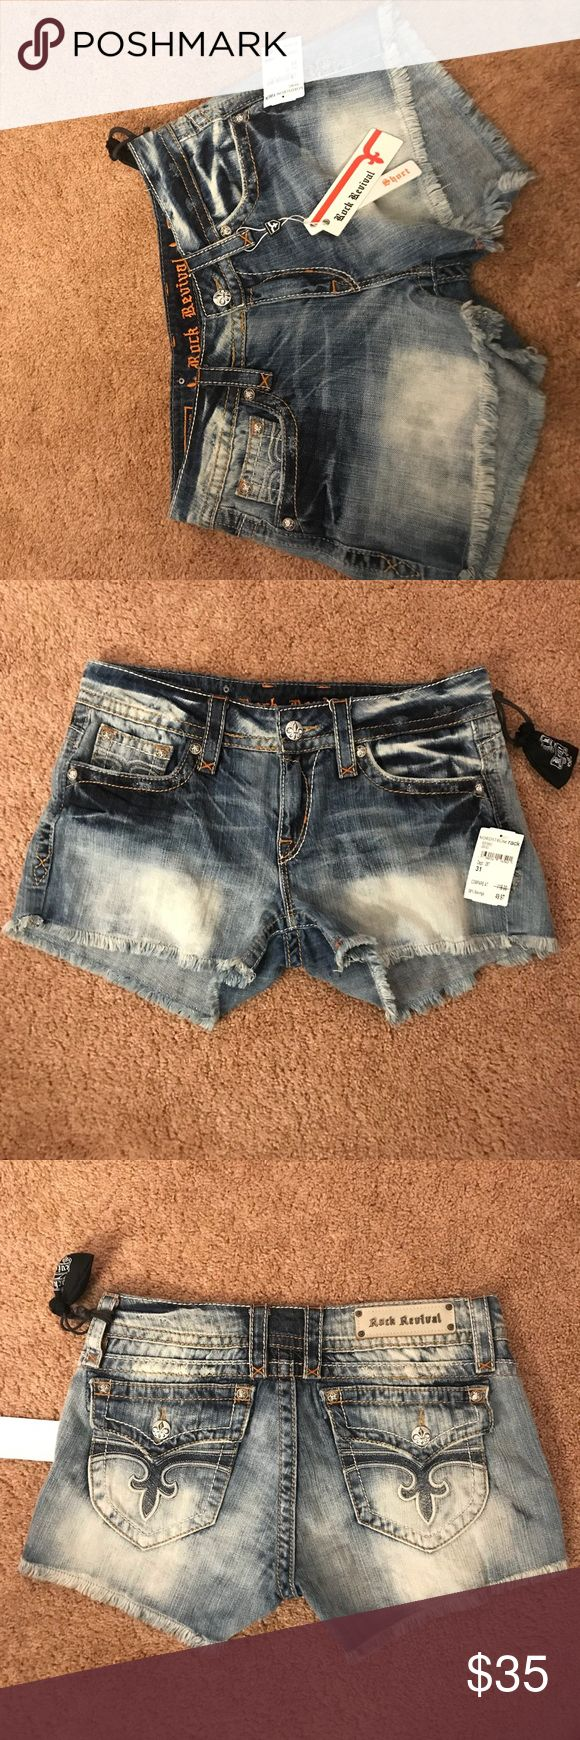 Brand new rock revivals shorts Brand new with tags attached just never wore size 31 womens Rock Revival Shorts Jean Shorts